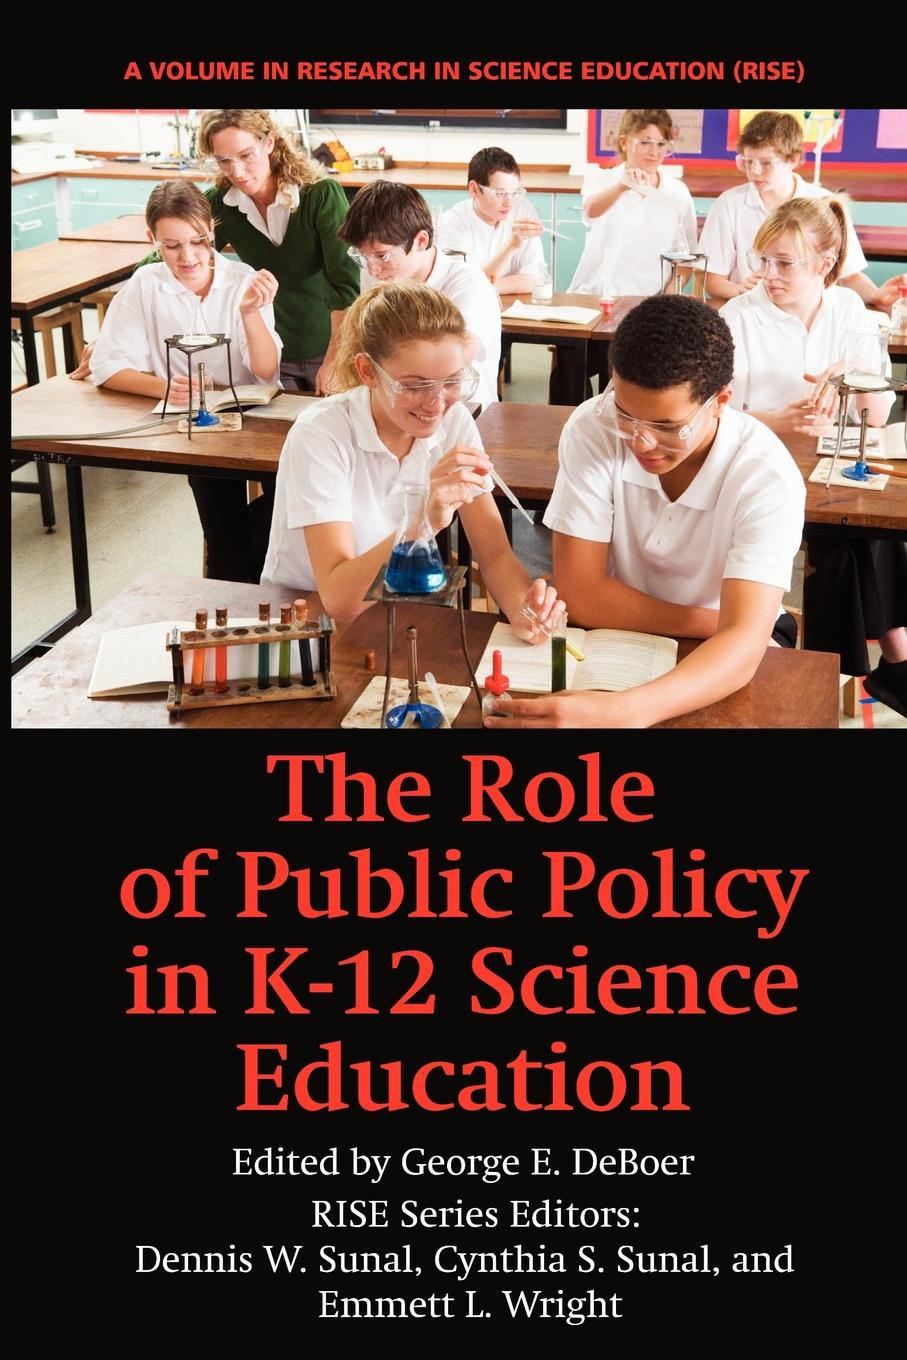 George E. Deboer The Role of Public Policy in K-12 Science Education mary p mckeown moak christopher m mullin higher education finance research policy politics and practice